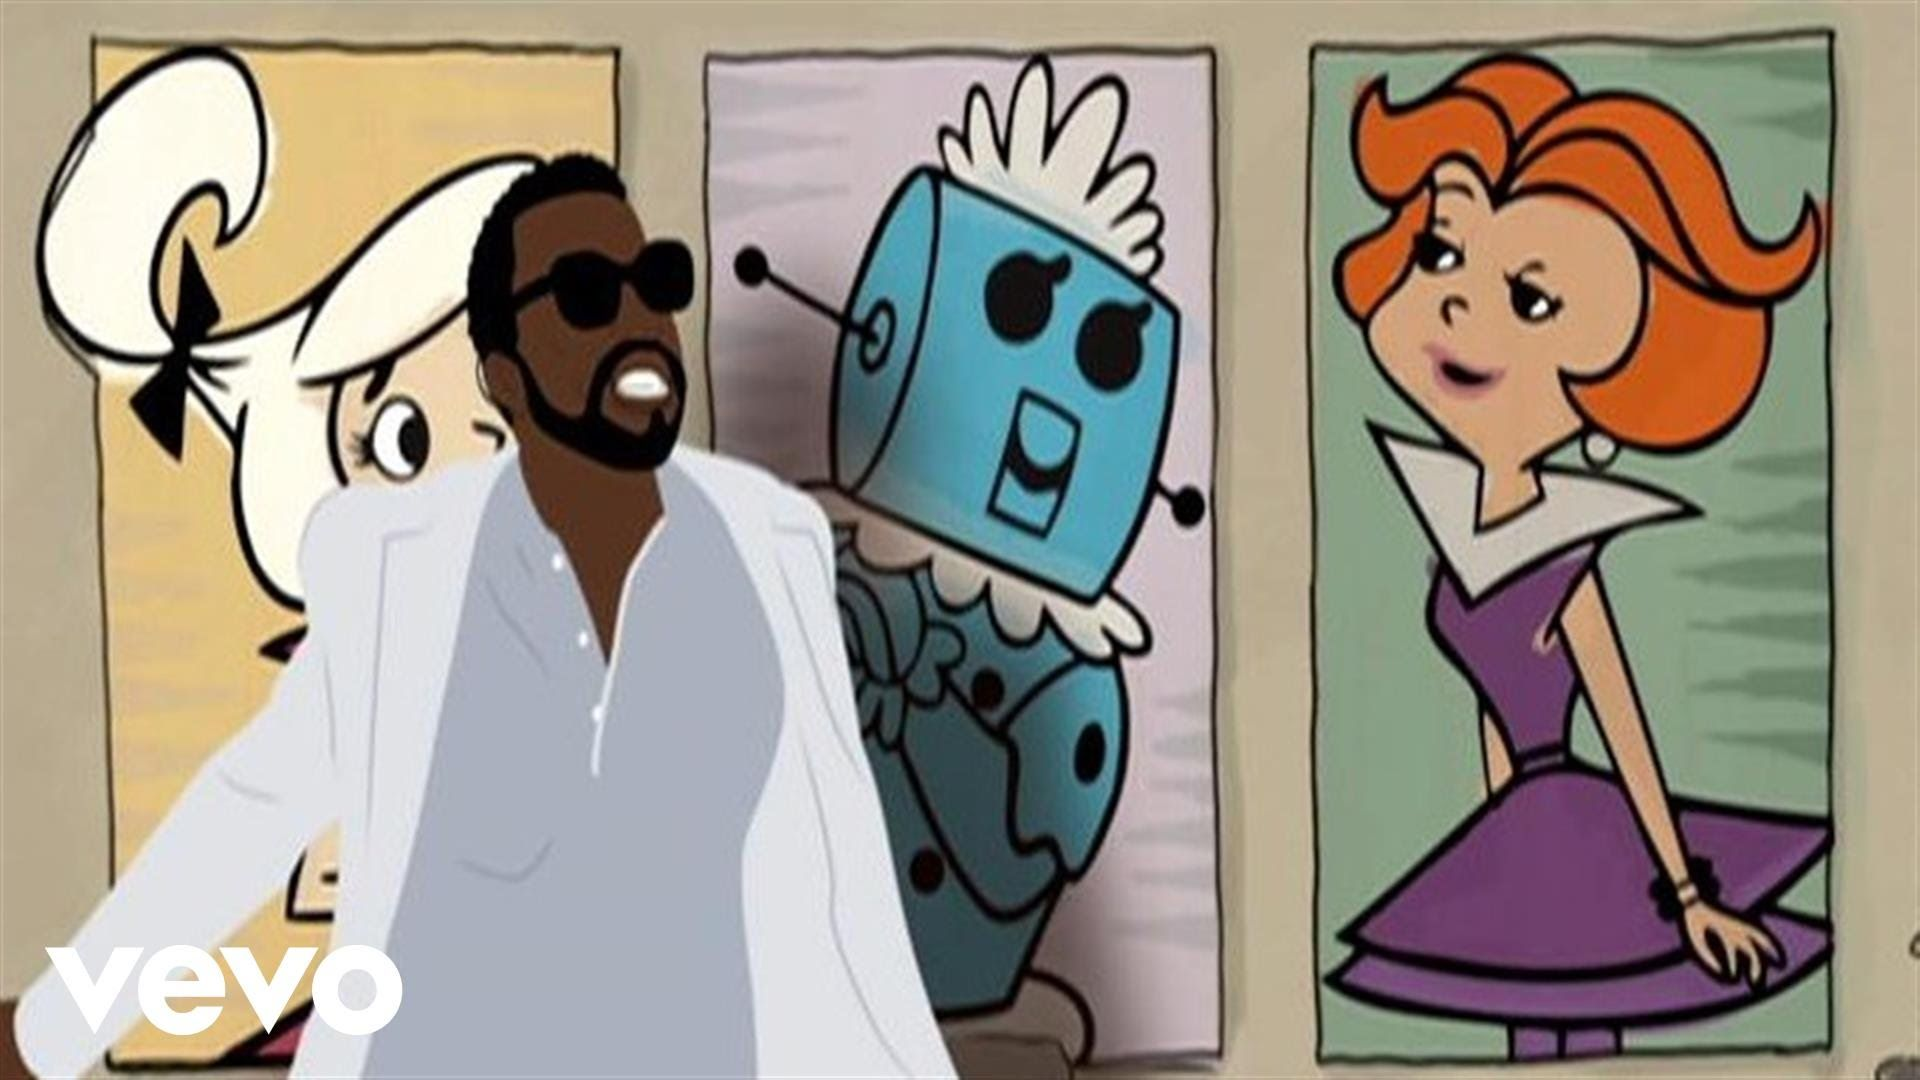 Kanye West Heartless References Andy Warhol S Campbell S Soup Cans And Other Works From Pop Culture Kanye West Kanye Animated Music Videos